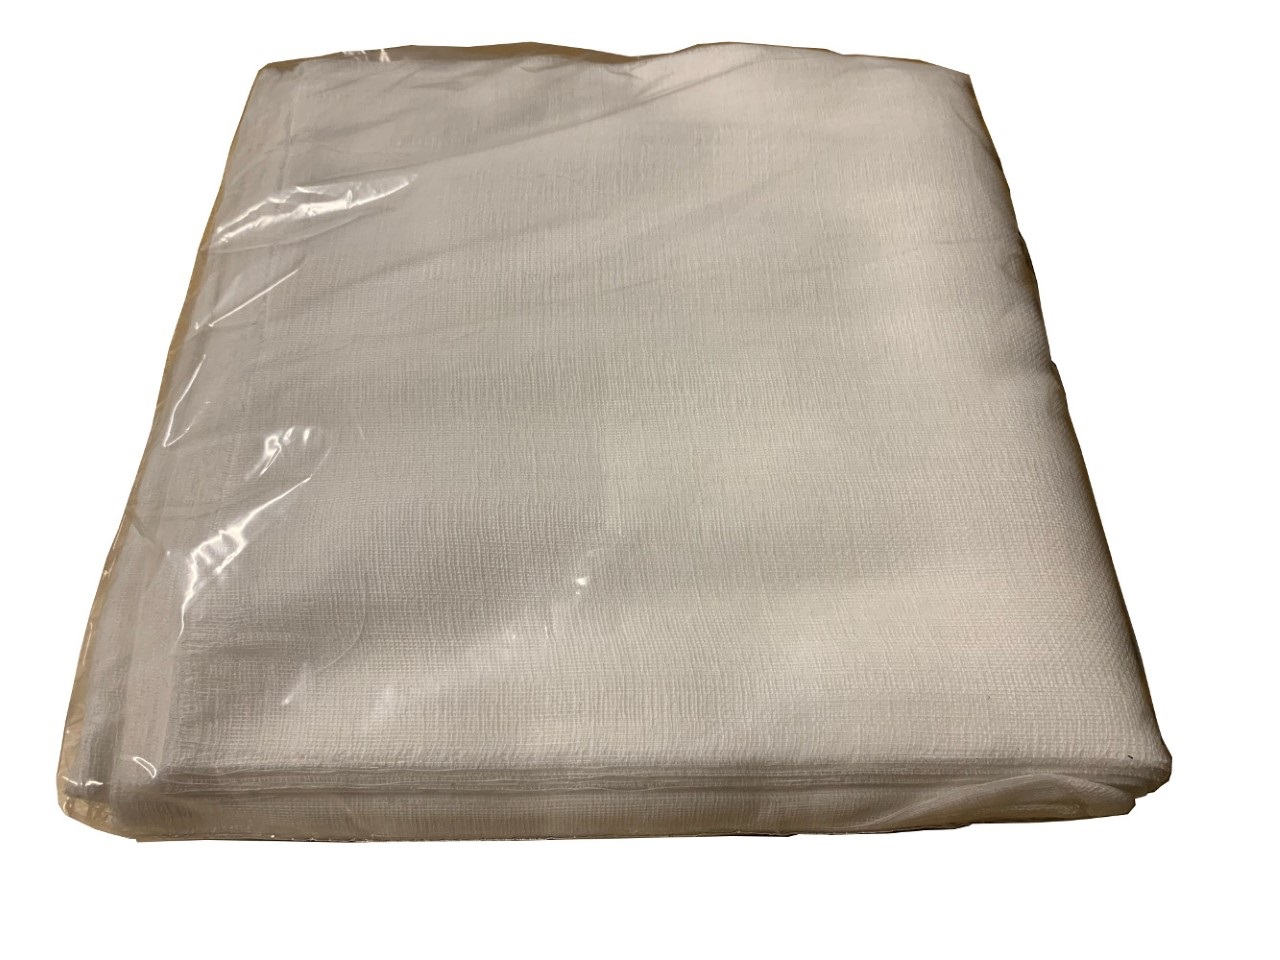 "Grade 50 Bagged Cheesecloth 10"" x 20"" - 100 Pack (Bleached)"